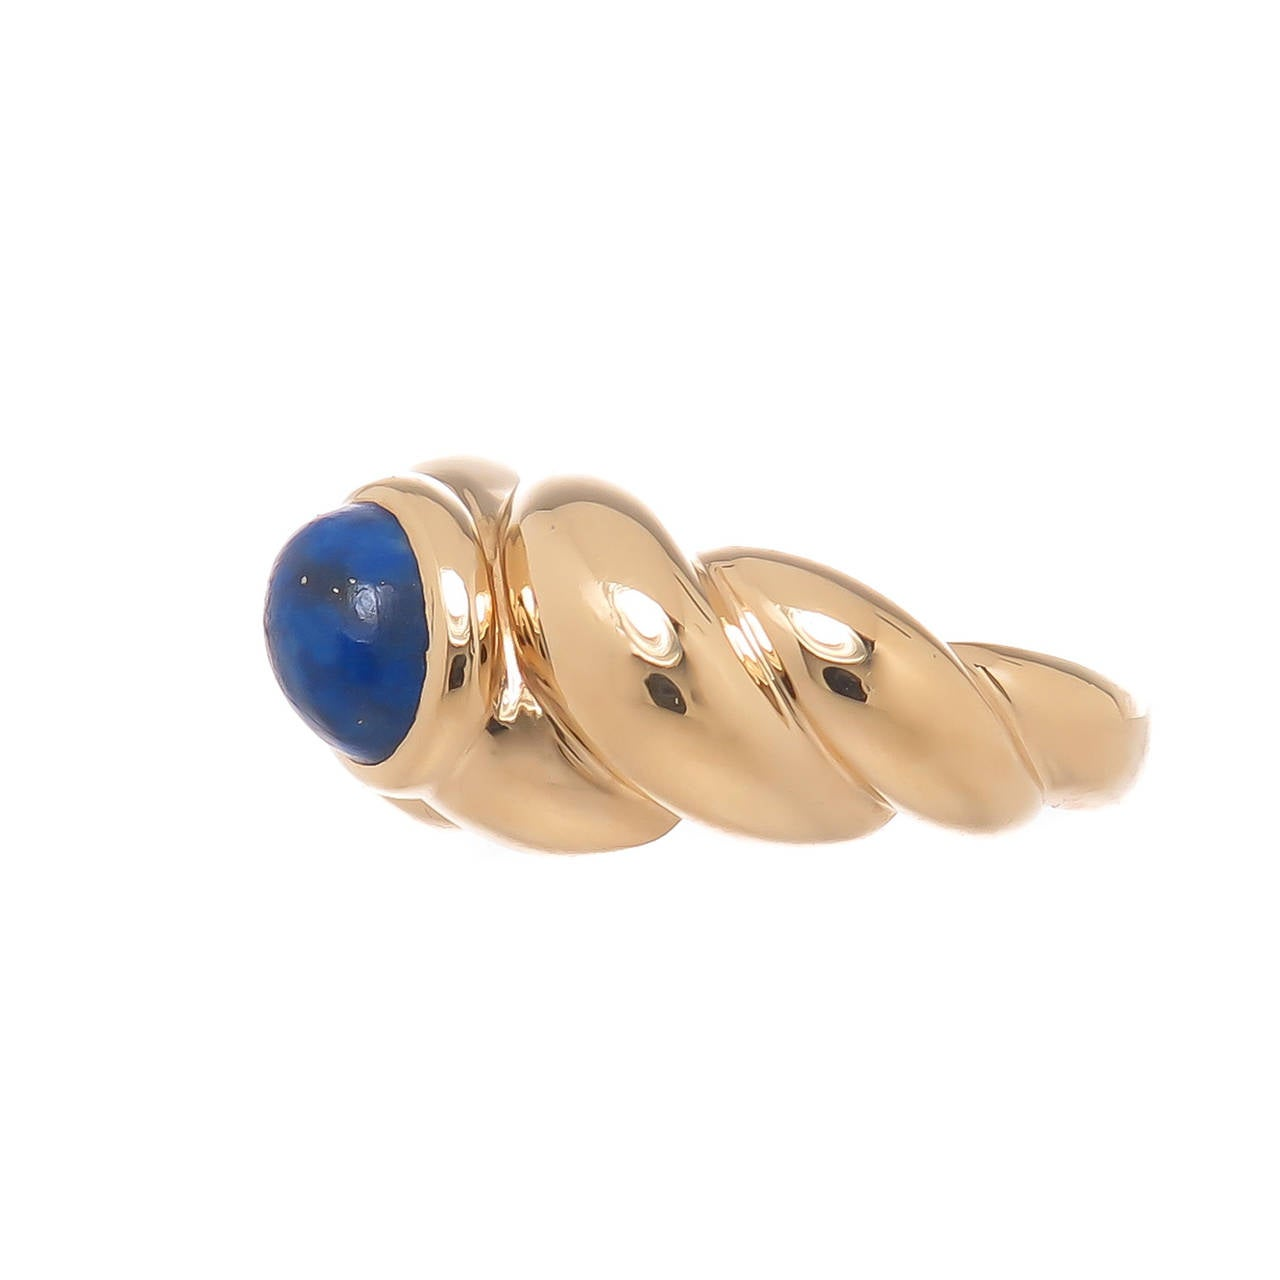 Van Cleef & Arpels Lapis Ring In Excellent Condition For Sale In Chicago, IL